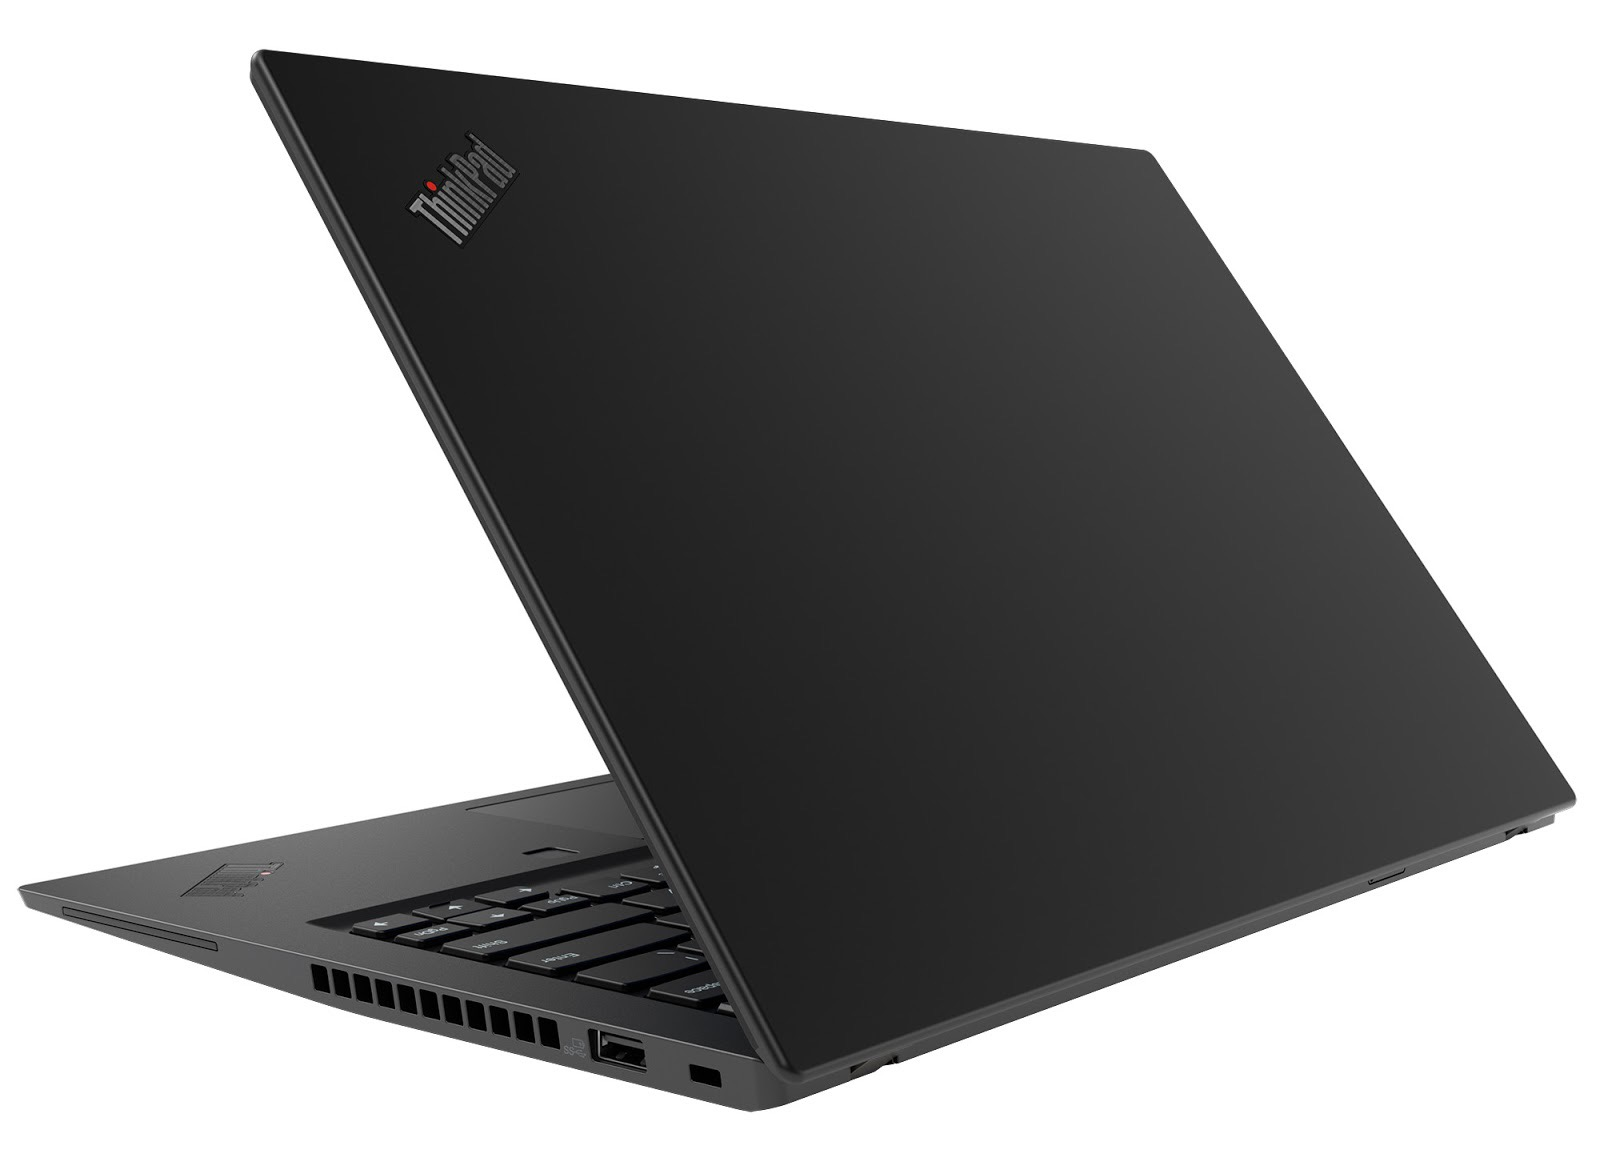 Фото 2. Ноутбук Lenovo ThinkPad T14 Gen 1 Black (20S00008RT)